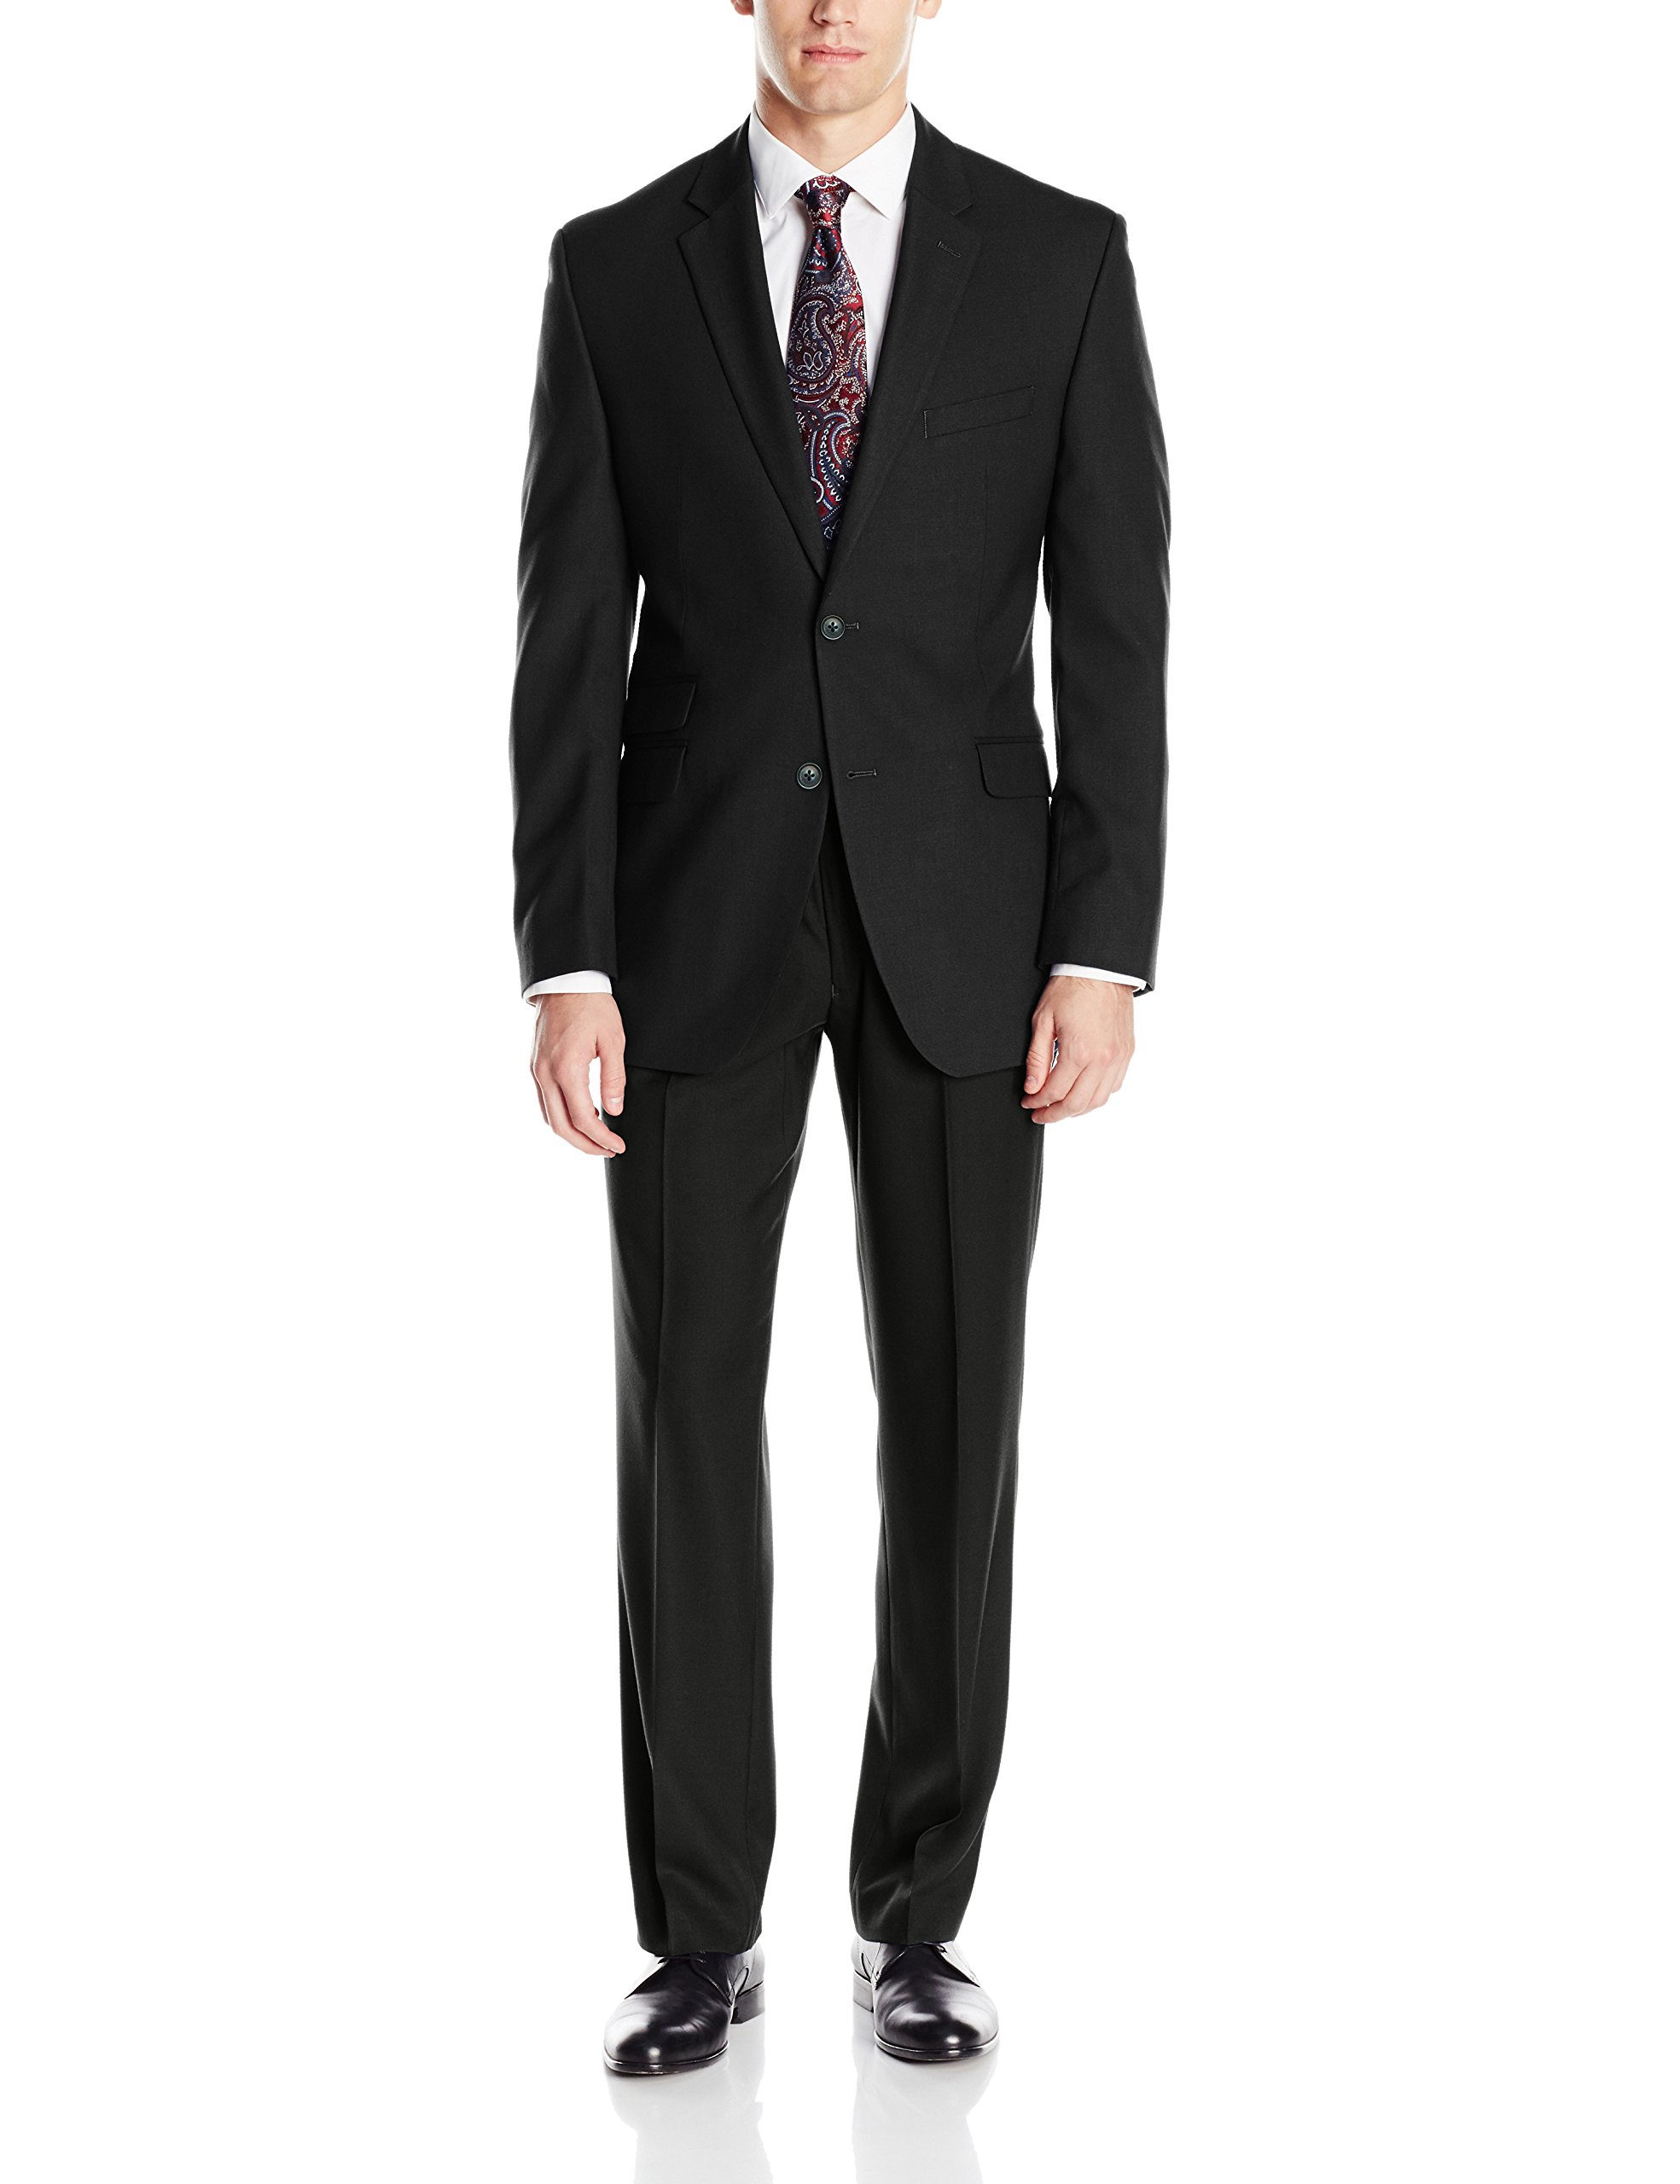 Perry Ellis Men's Slim Fit Suit With Hemmed Pant, Black, 40 Regular